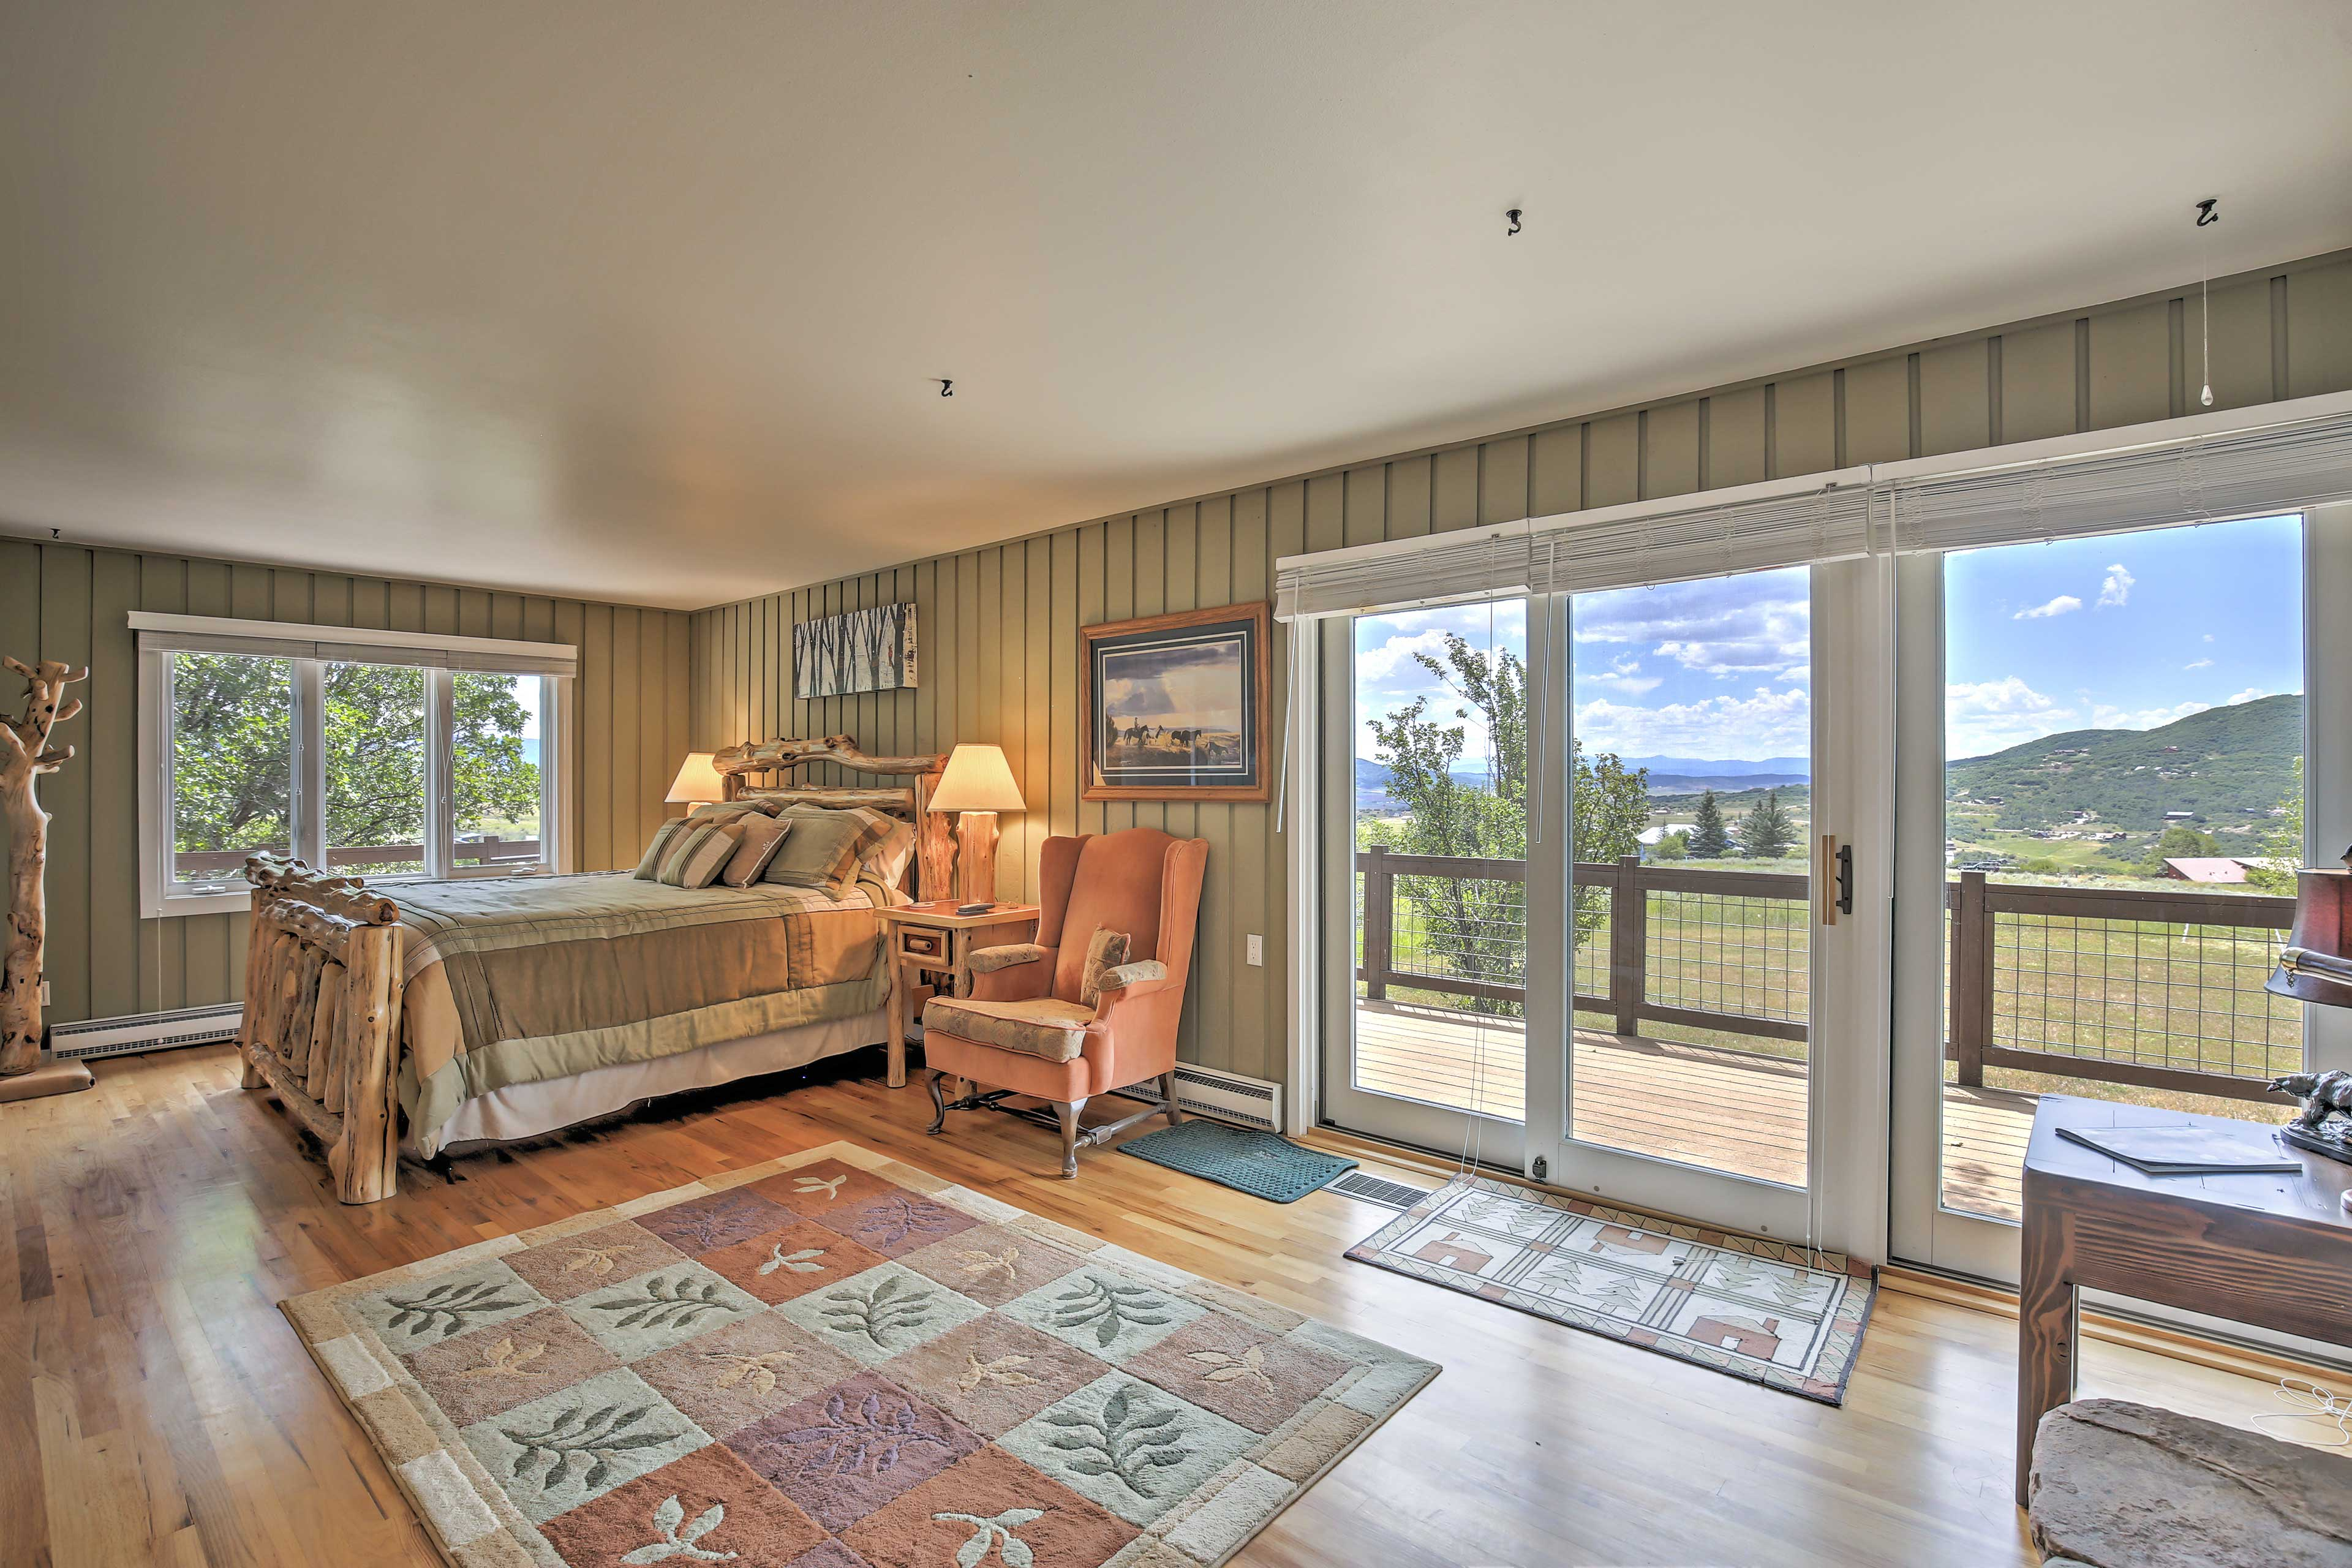 Expansive views greet you in the master bedroom.